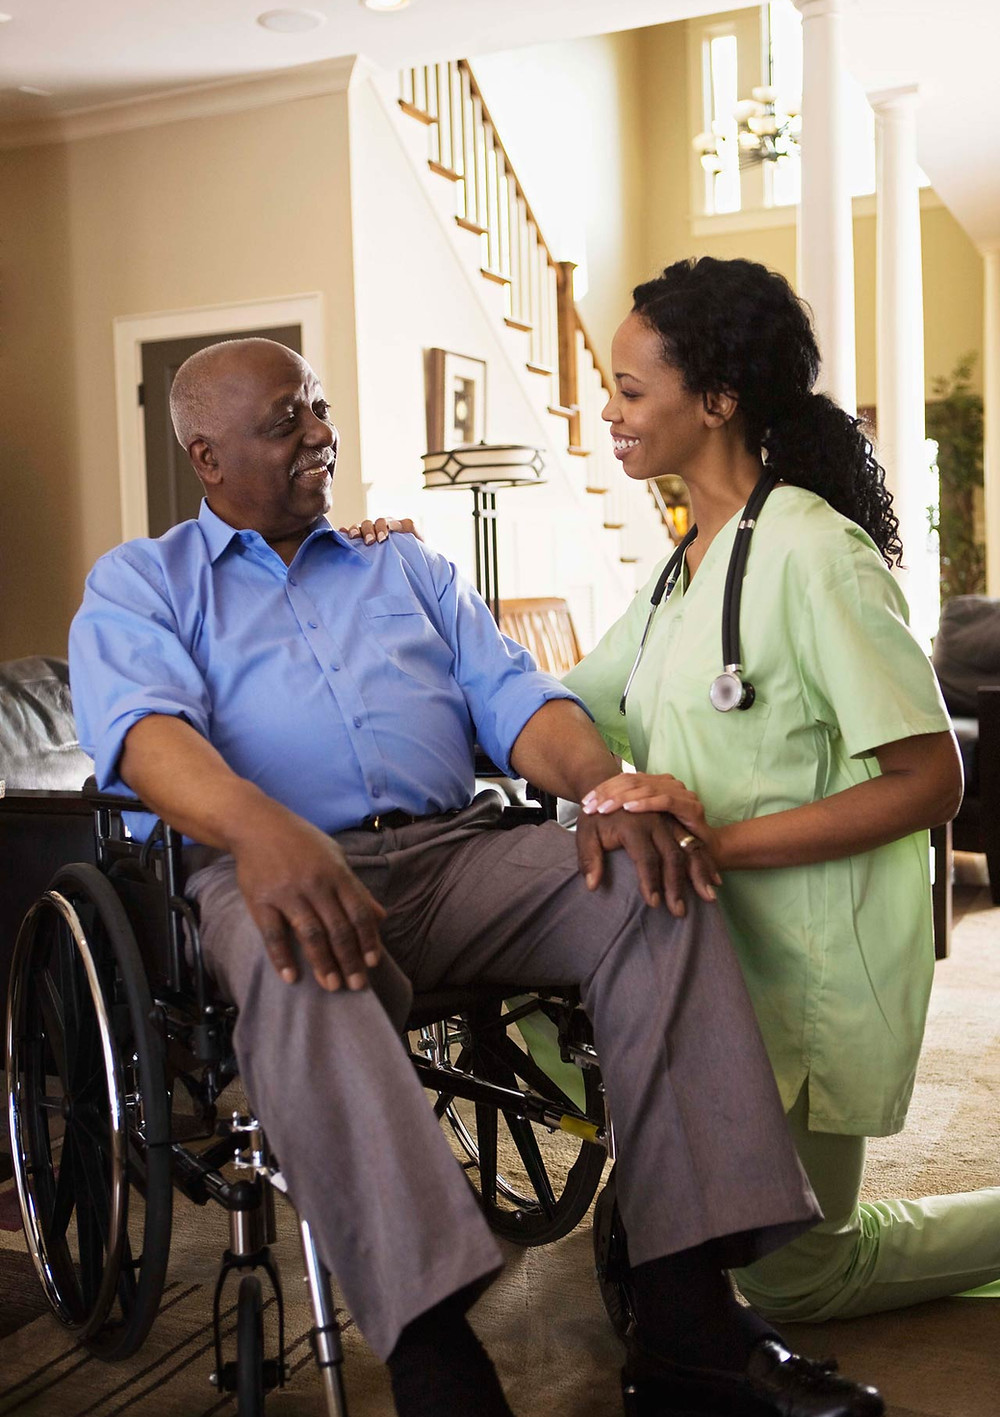 In care home needing physiotherapy